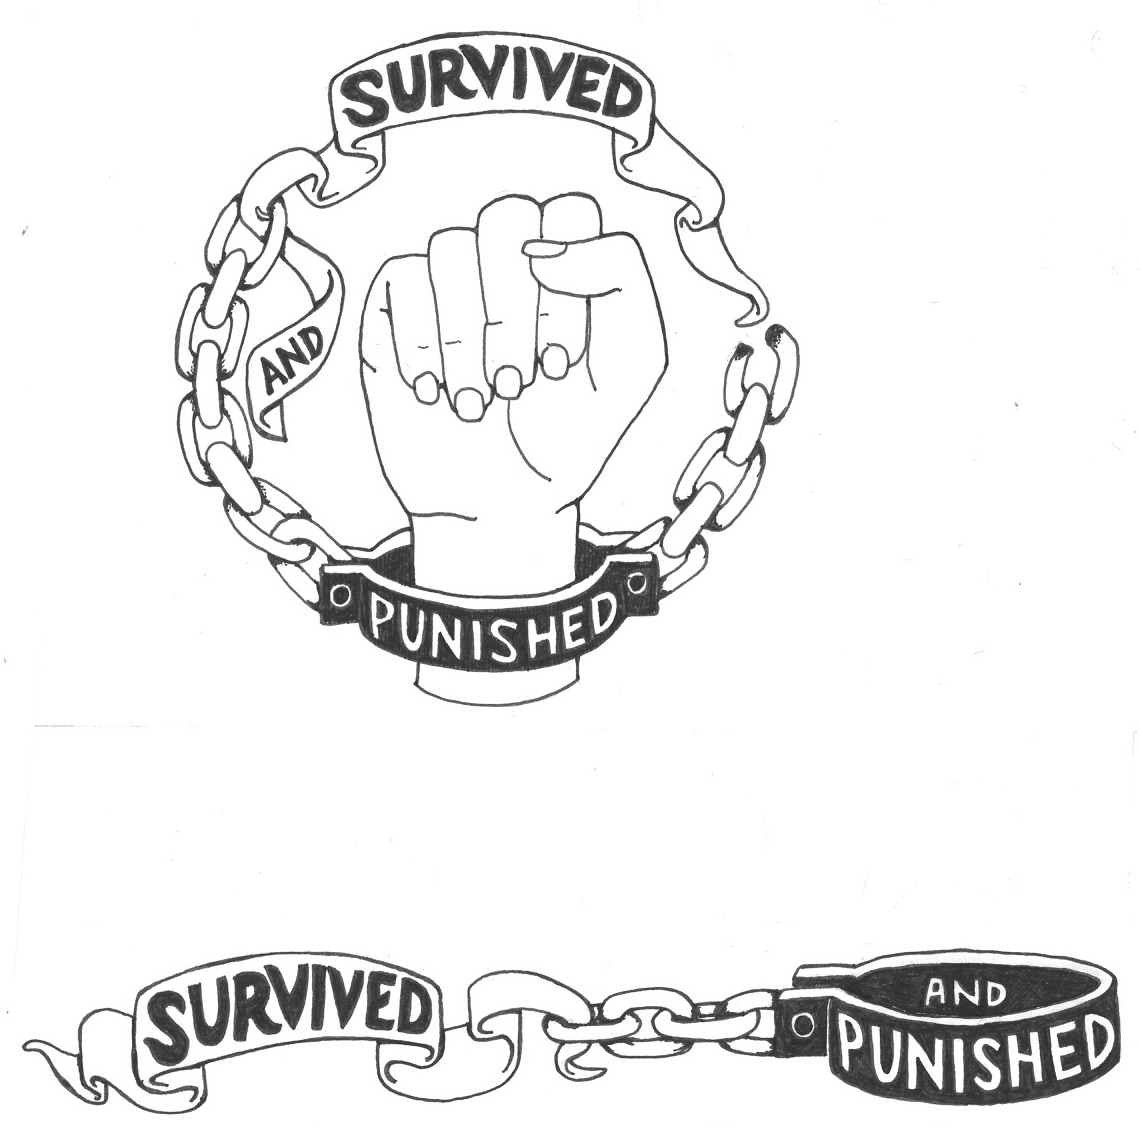 the Survived and Punished national logo: a fist with a handcuff around the wrist and chains reaching above the fist to a a piece of cloth, with the words Survived and Punished.